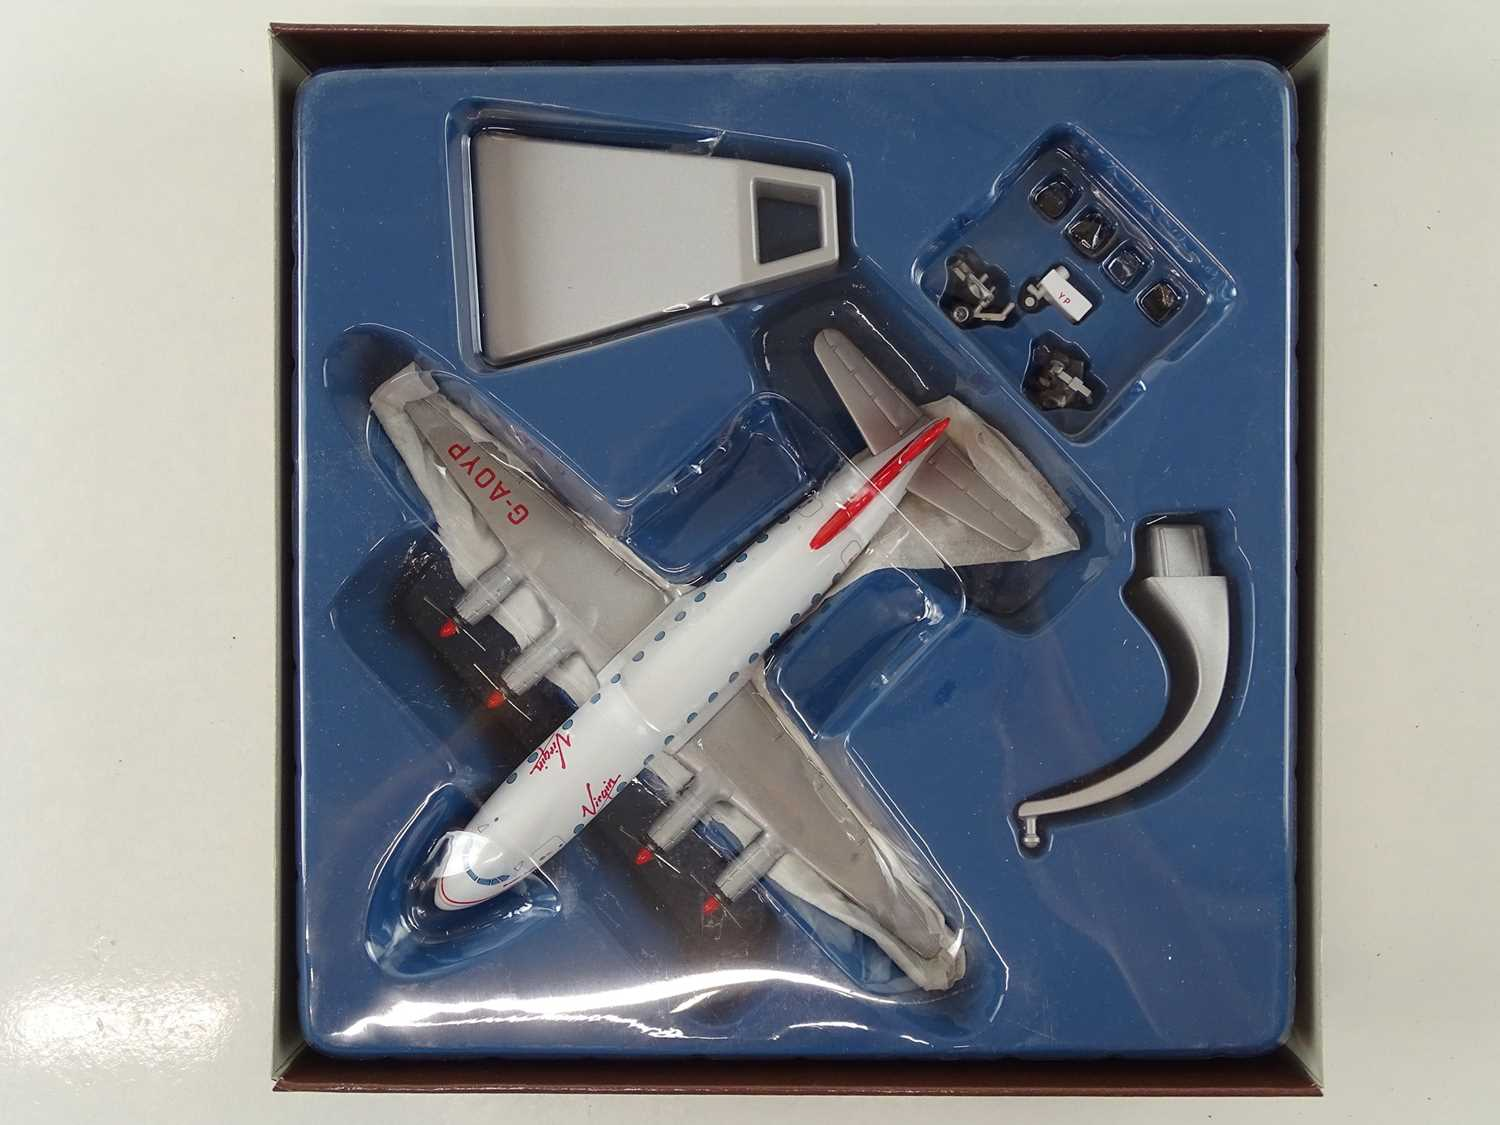 A group of CORGI AVIATION ARCHIVE 1:144 scale Classic Propliners Series Propellor Aircraft - VG in G - Image 7 of 10